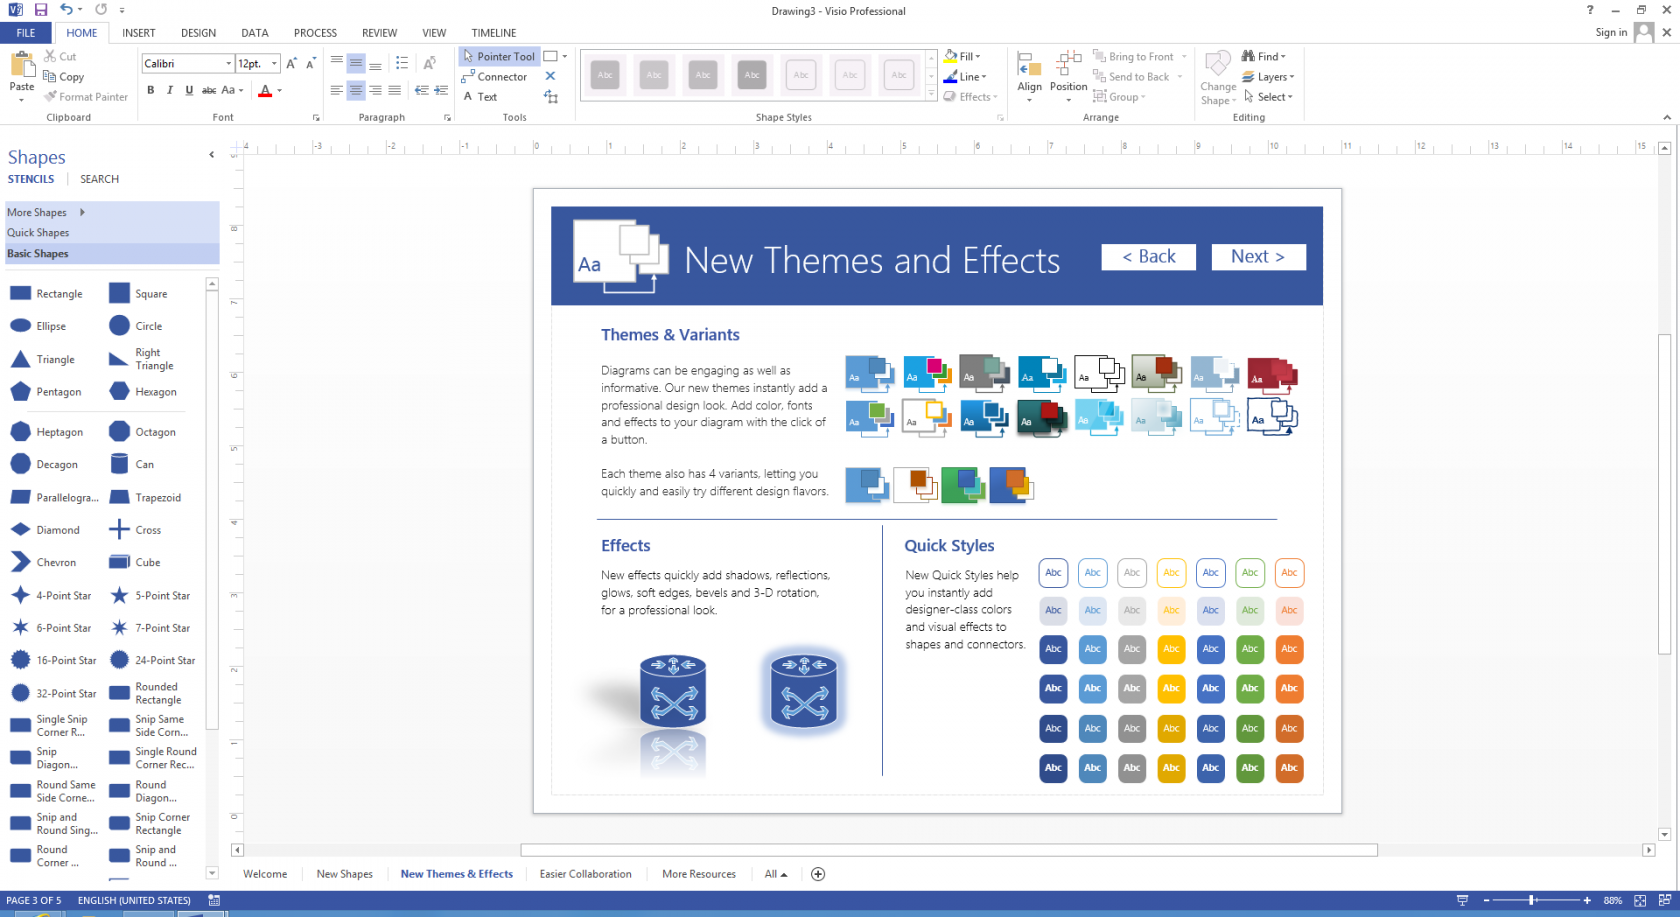 Buy Official Microsoft Visio Professional Software